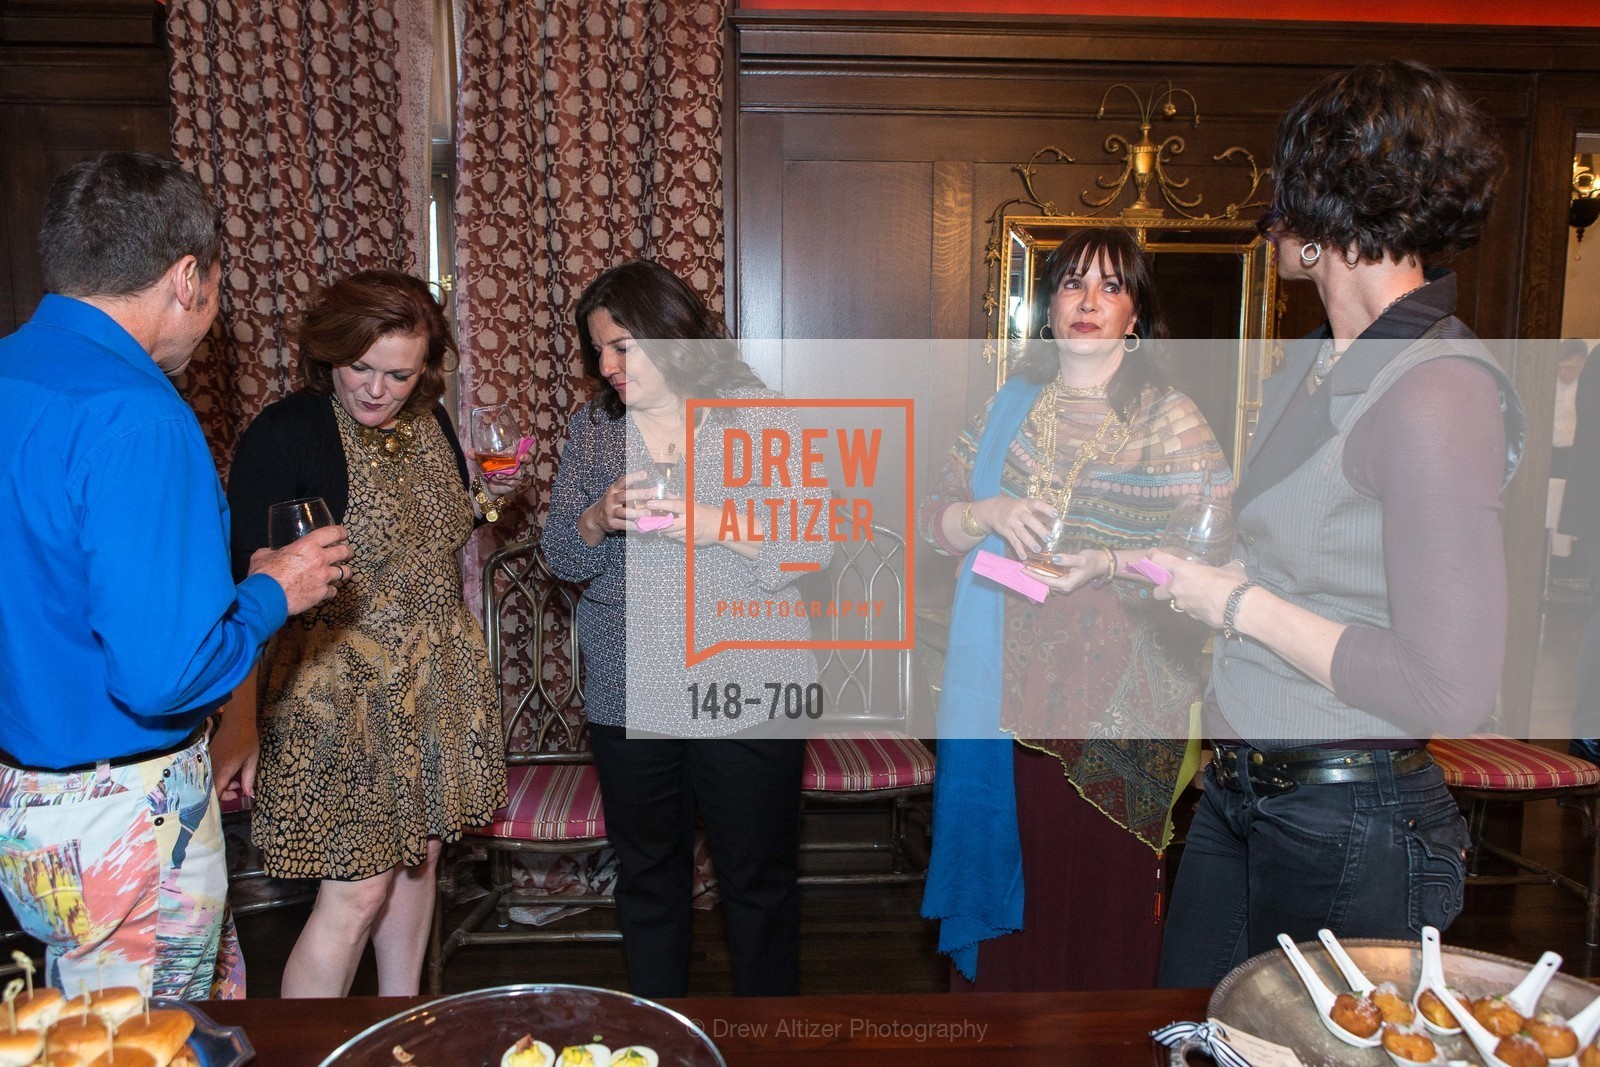 Jennifer Raiser, Bridget Stangland, Claudia Juestel, SUKEY FORBES' Book Signing, US, May 7th, 2015,Drew Altizer, Drew Altizer Photography, full-service agency, private events, San Francisco photographer, photographer california